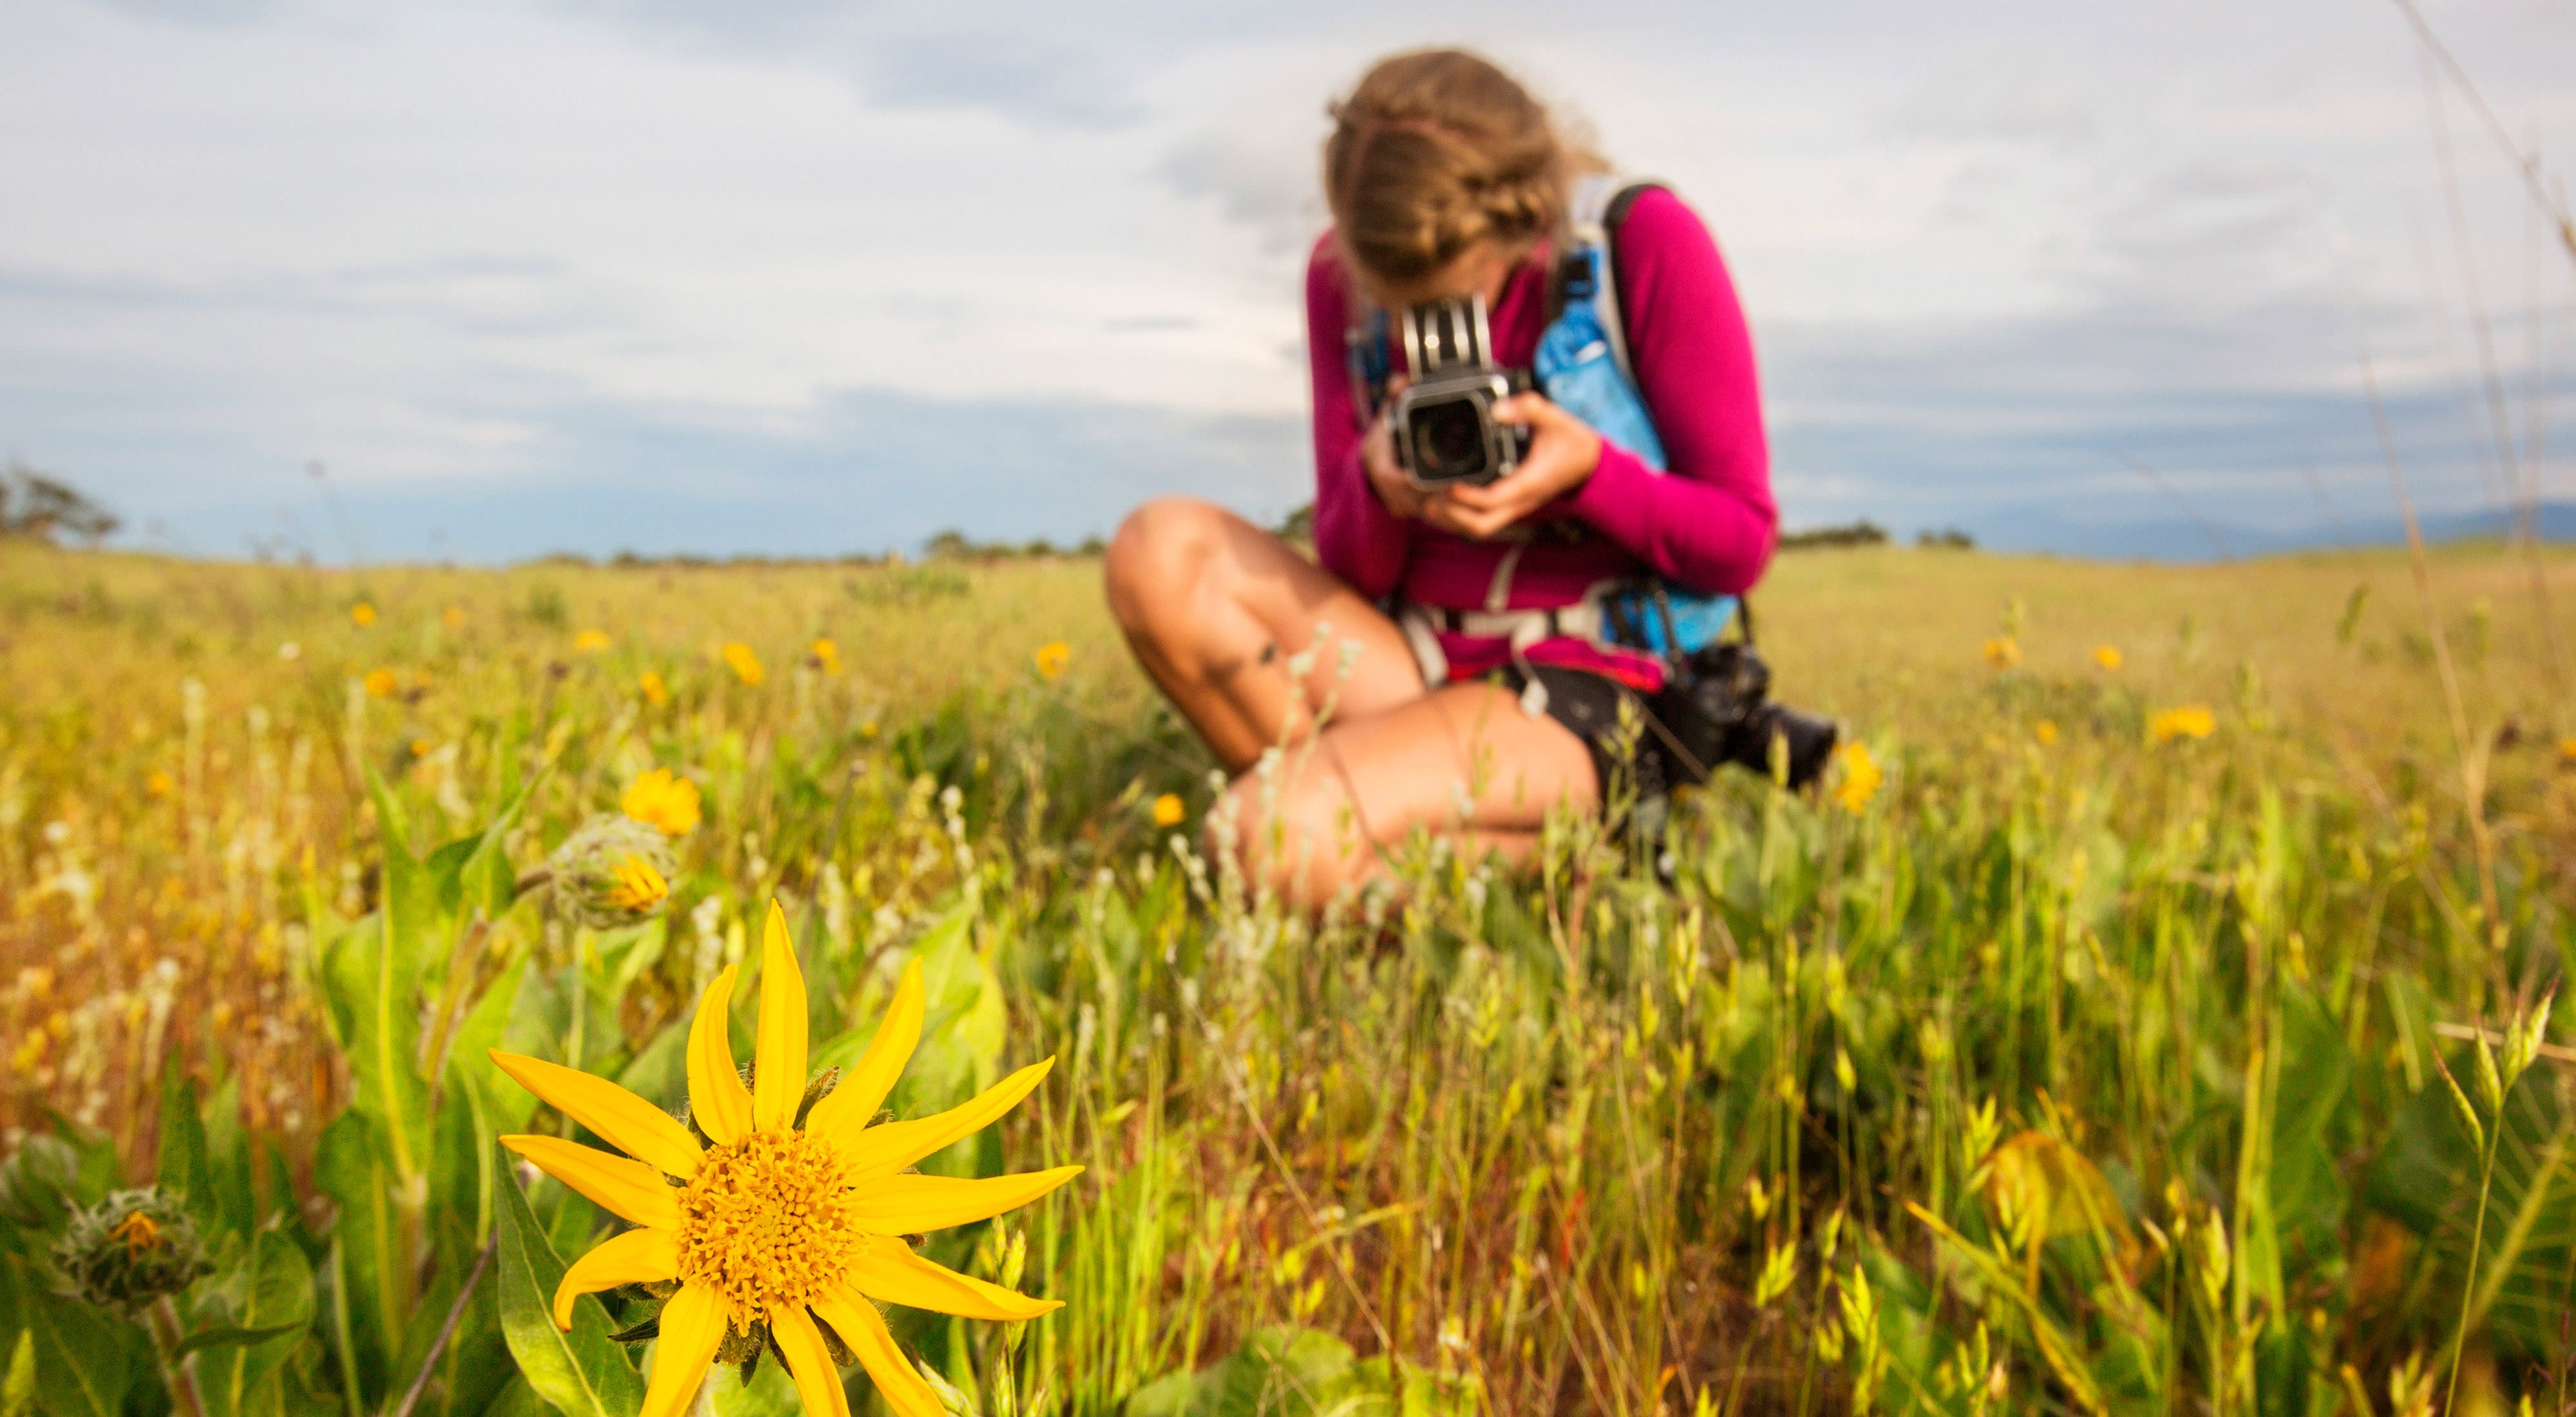 Southwestern Oregon's Table Rocks offers a generous serving of scenic views and wildflowers